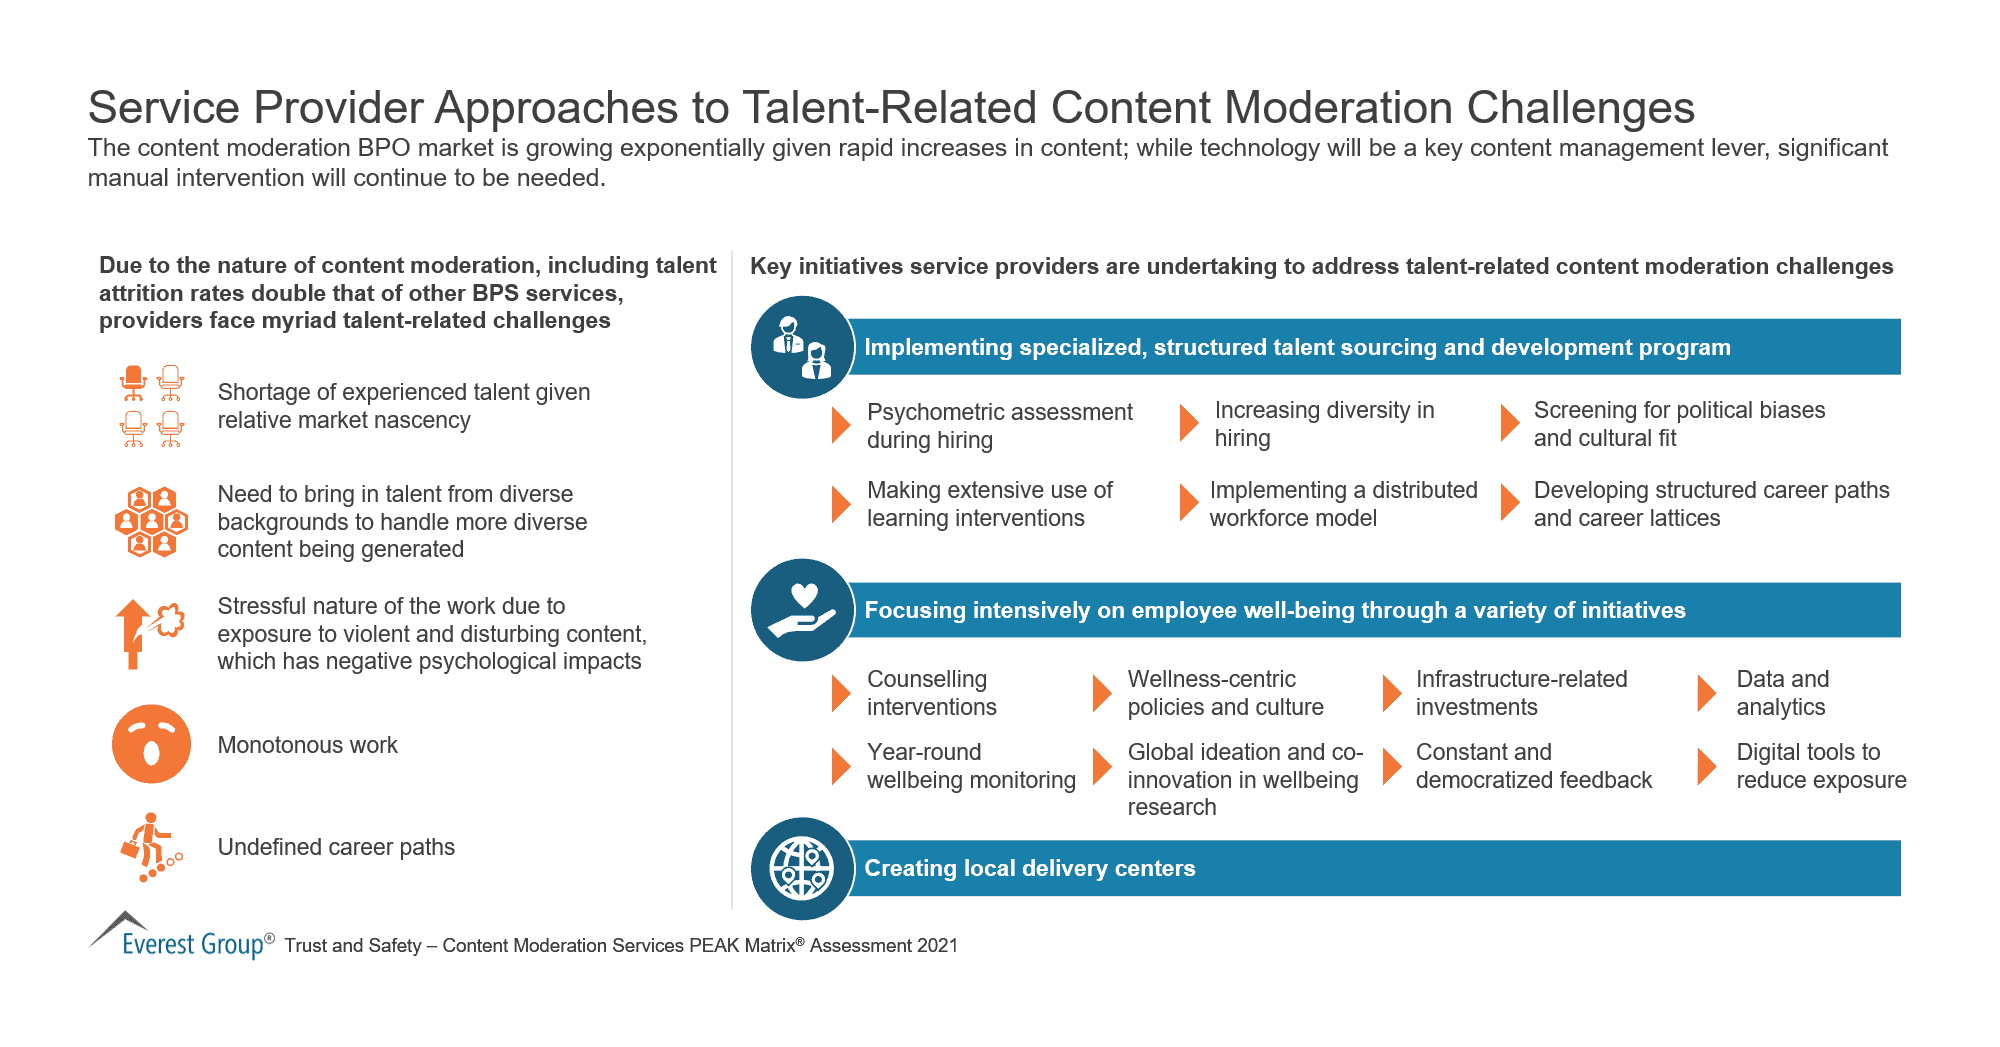 Service Provider Approaches to Talent-Related Content Moderation Challenges